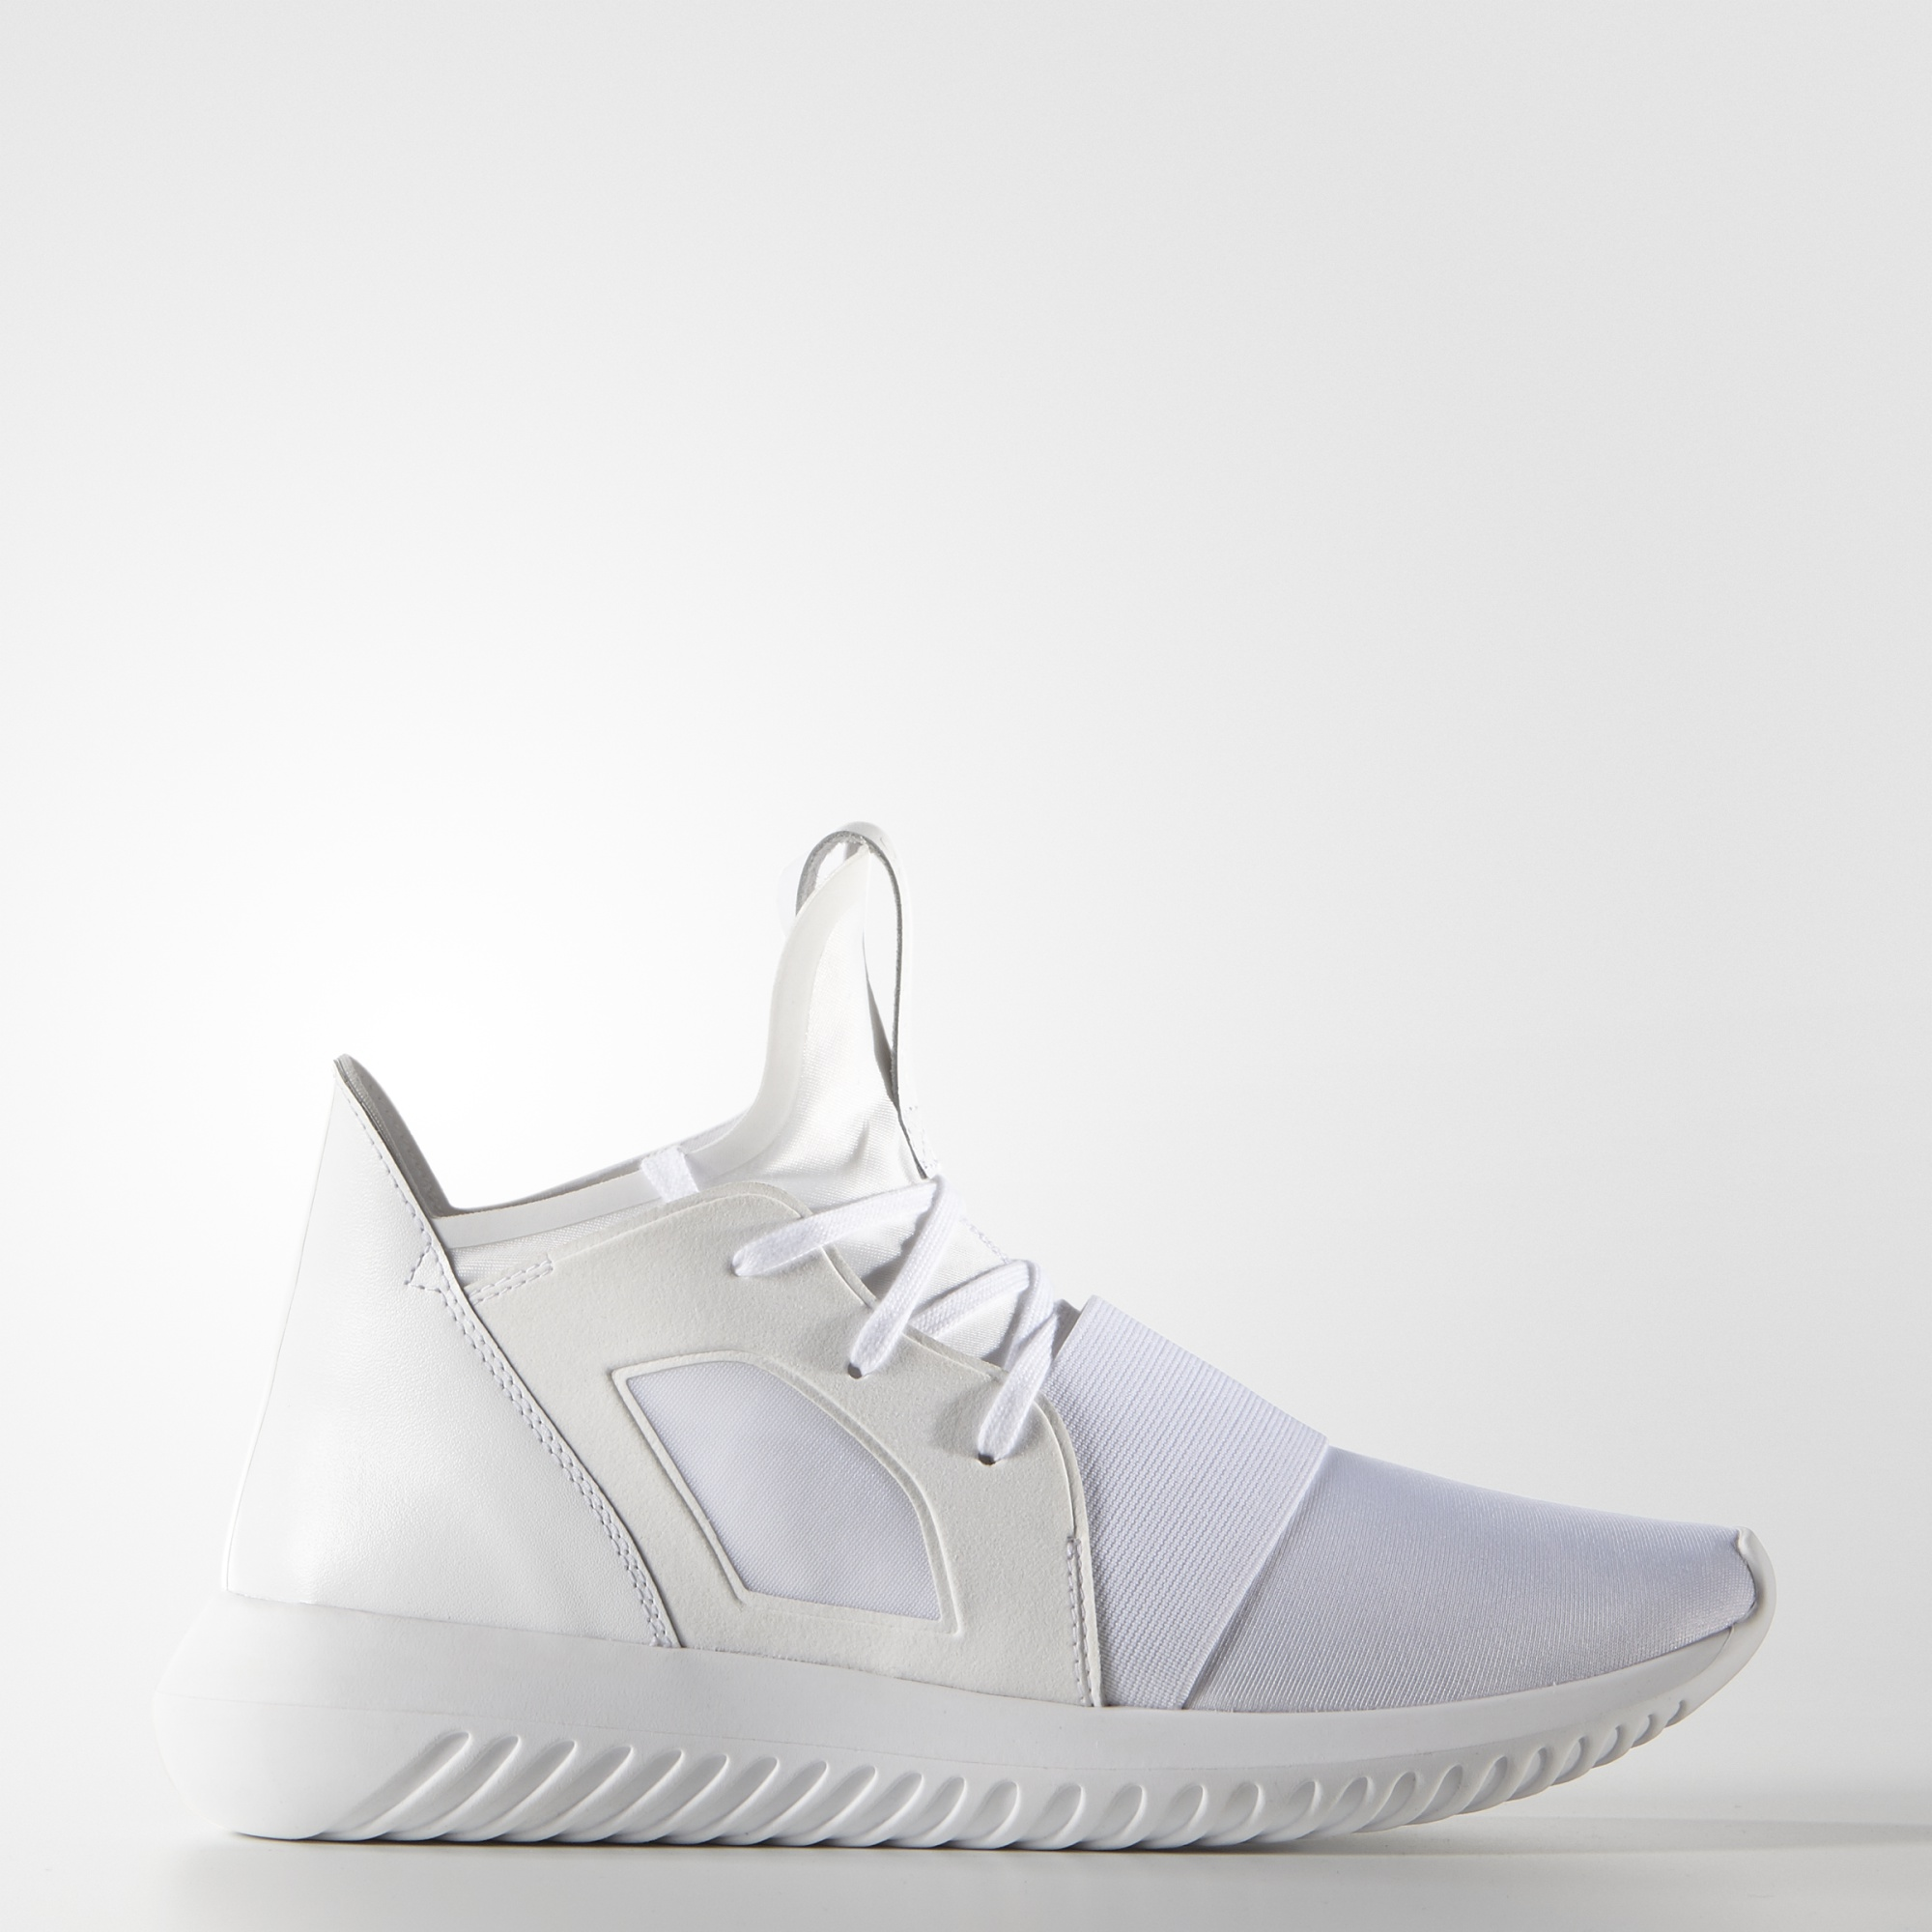 Adidas Originals Tubular Doom Pink Sneakers S74795 Caliroots